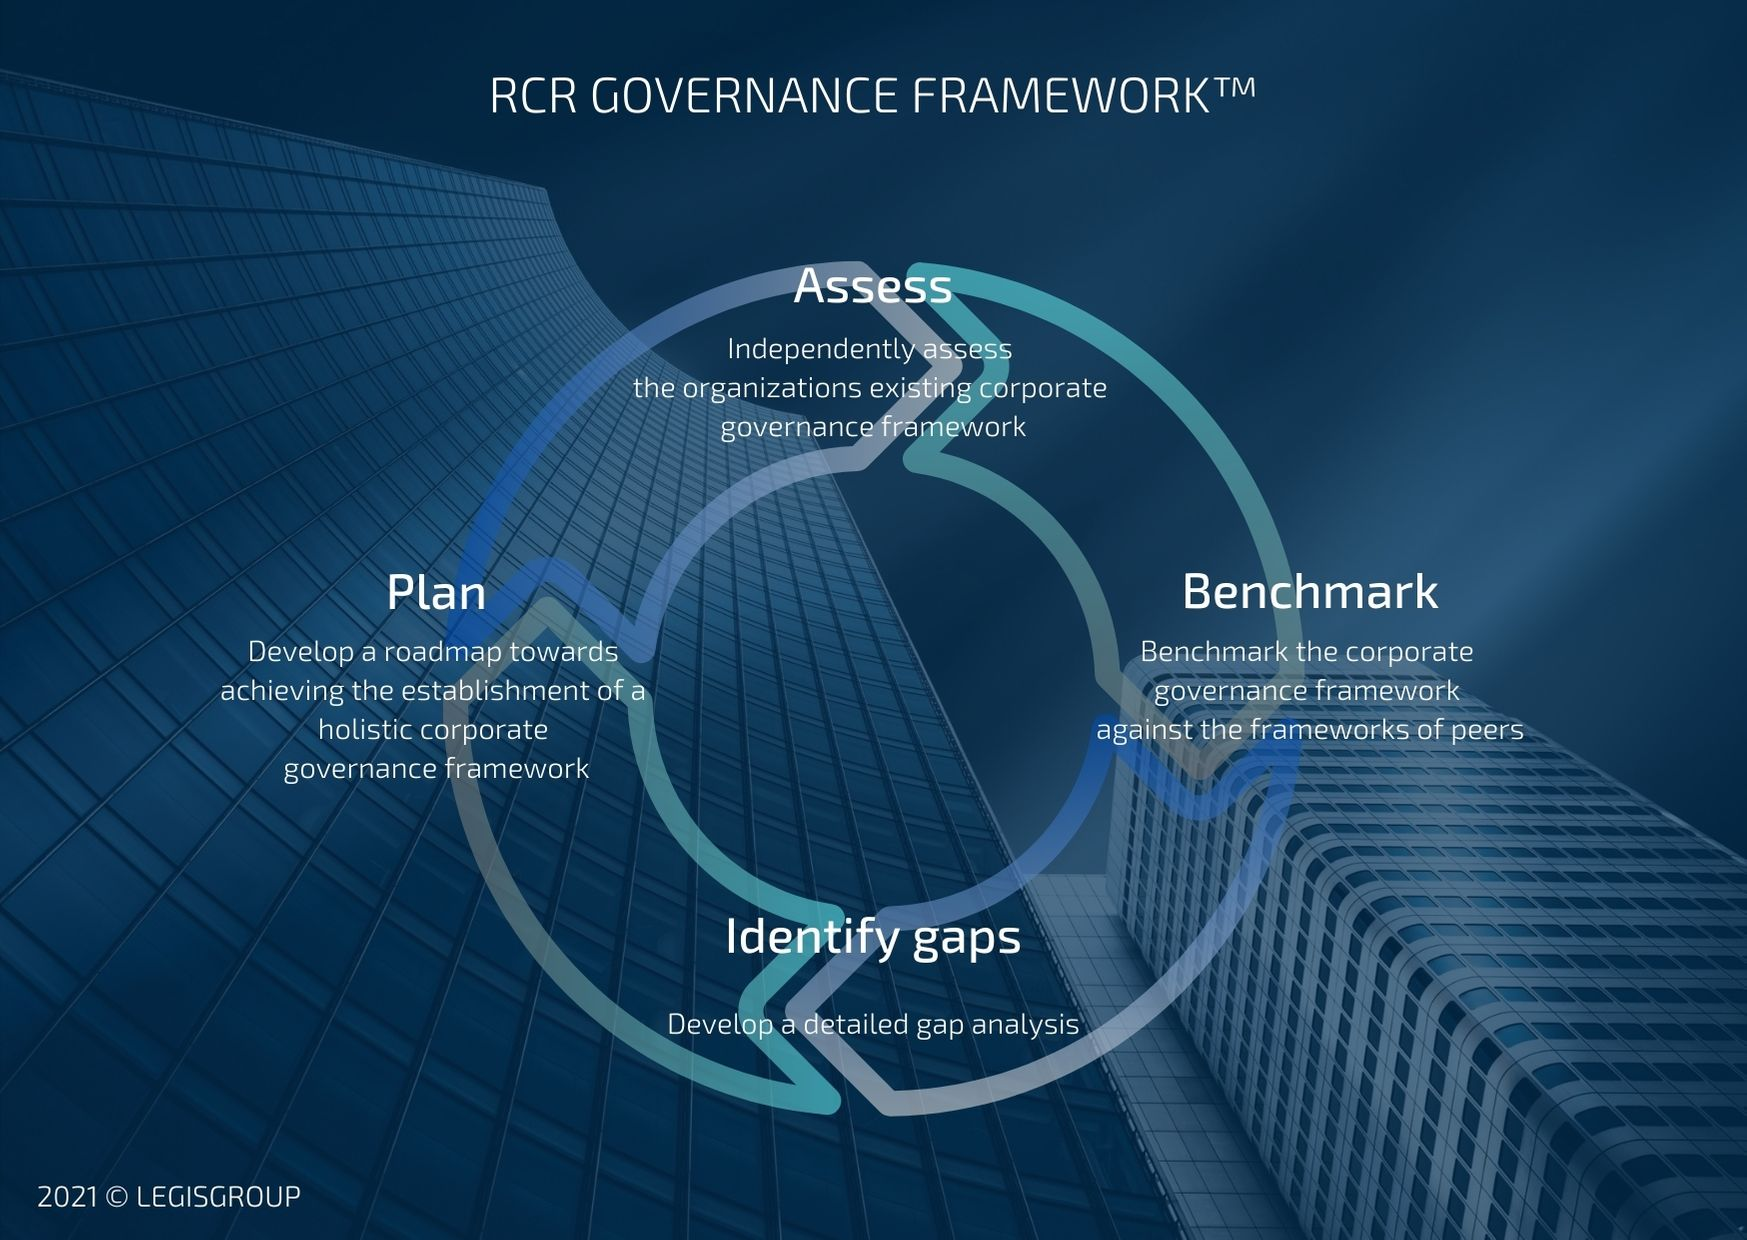 RCR GOVERNANCE FRAMEWORK™ (ASSESSMENT PROCESS)